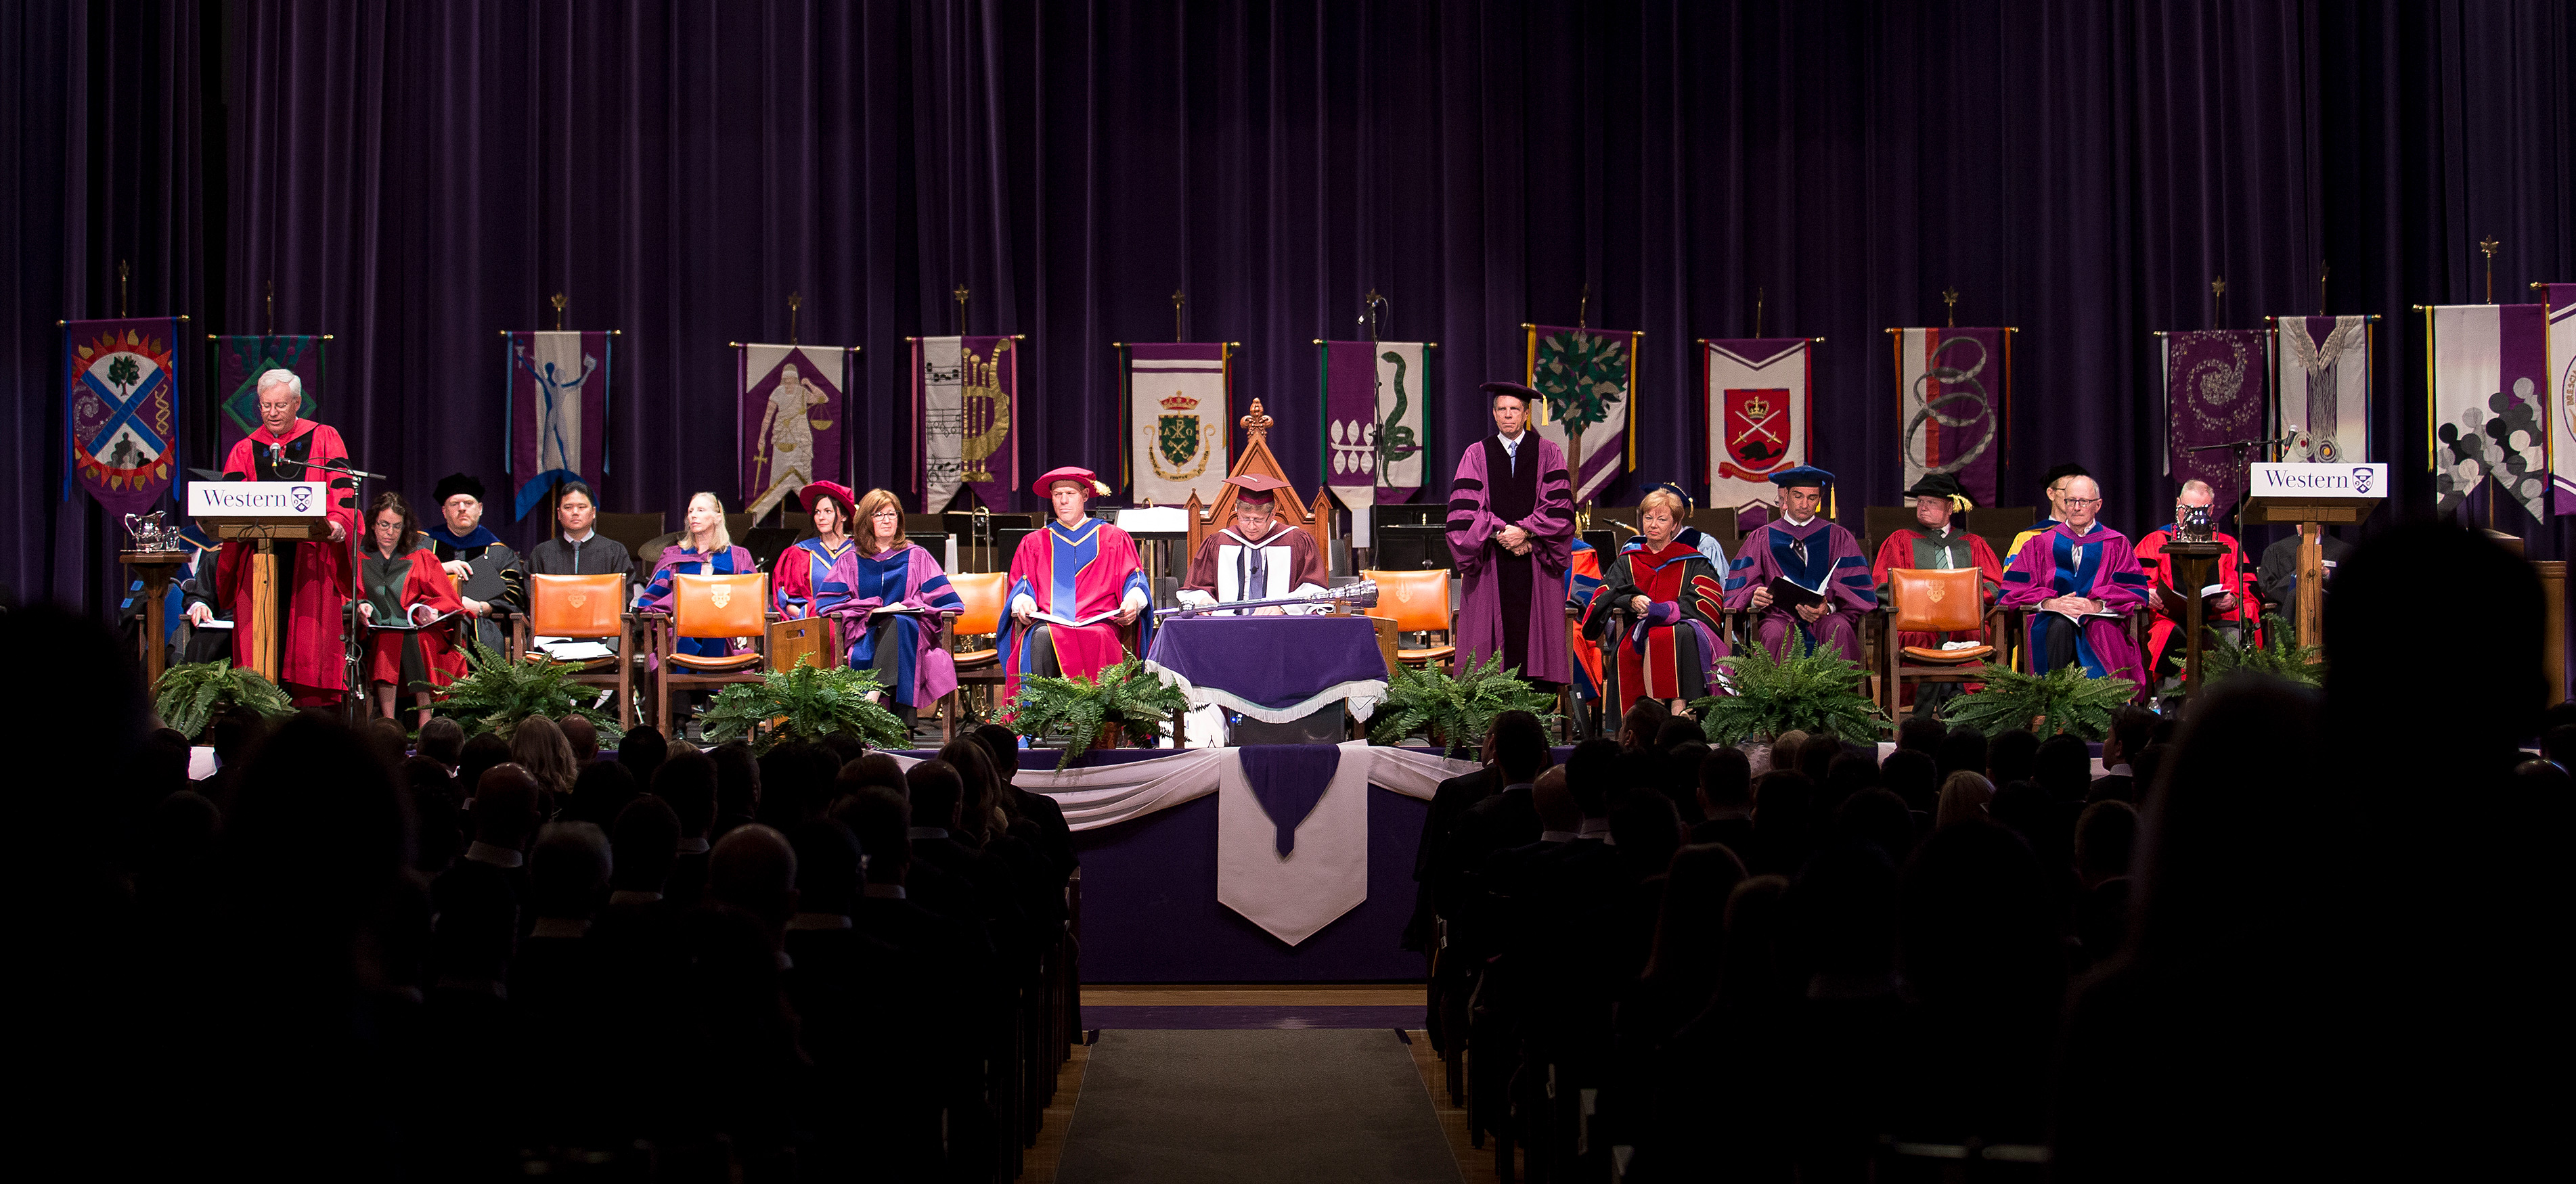 Honourable faculty, alumni, and distinguished guests seated on stage at a convocation ceremony.